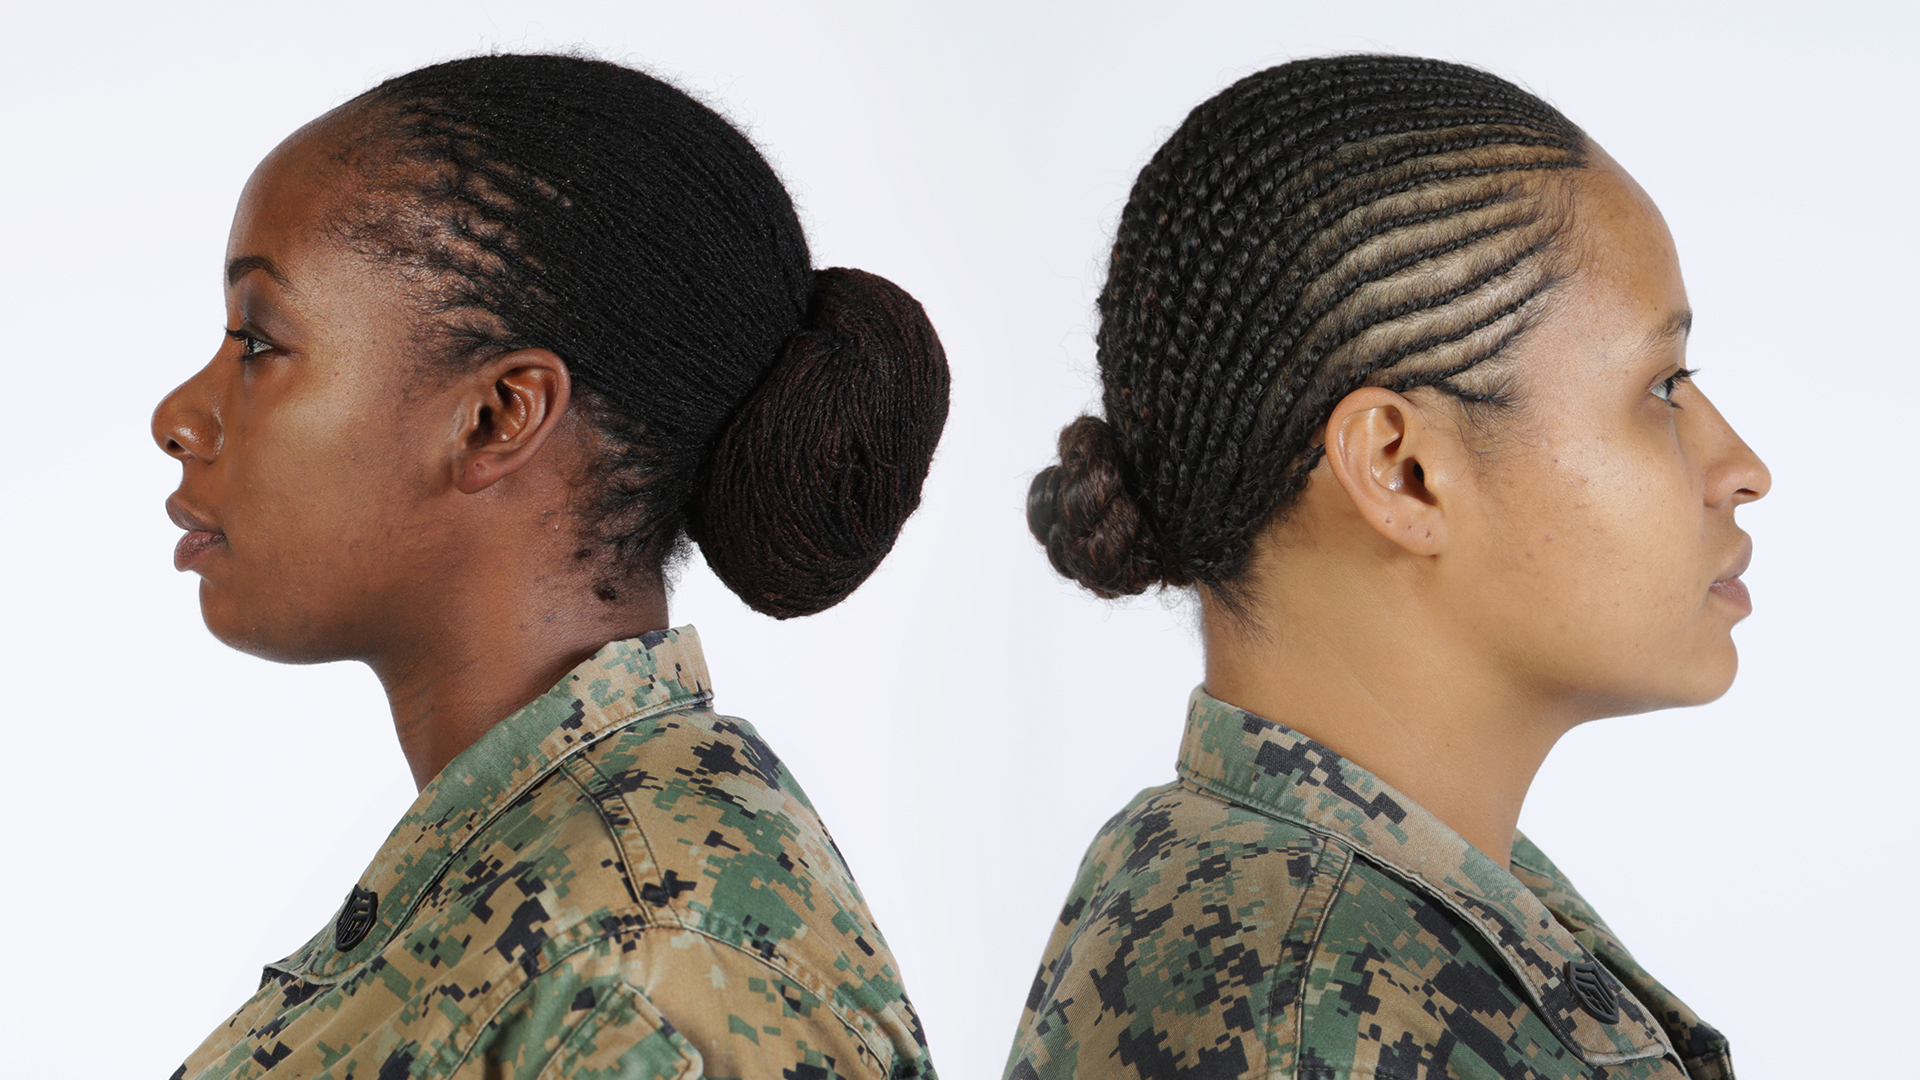 Soldiers cheer armys decision to authorize dreadlocks in uniform solutioingenieria Choice Image